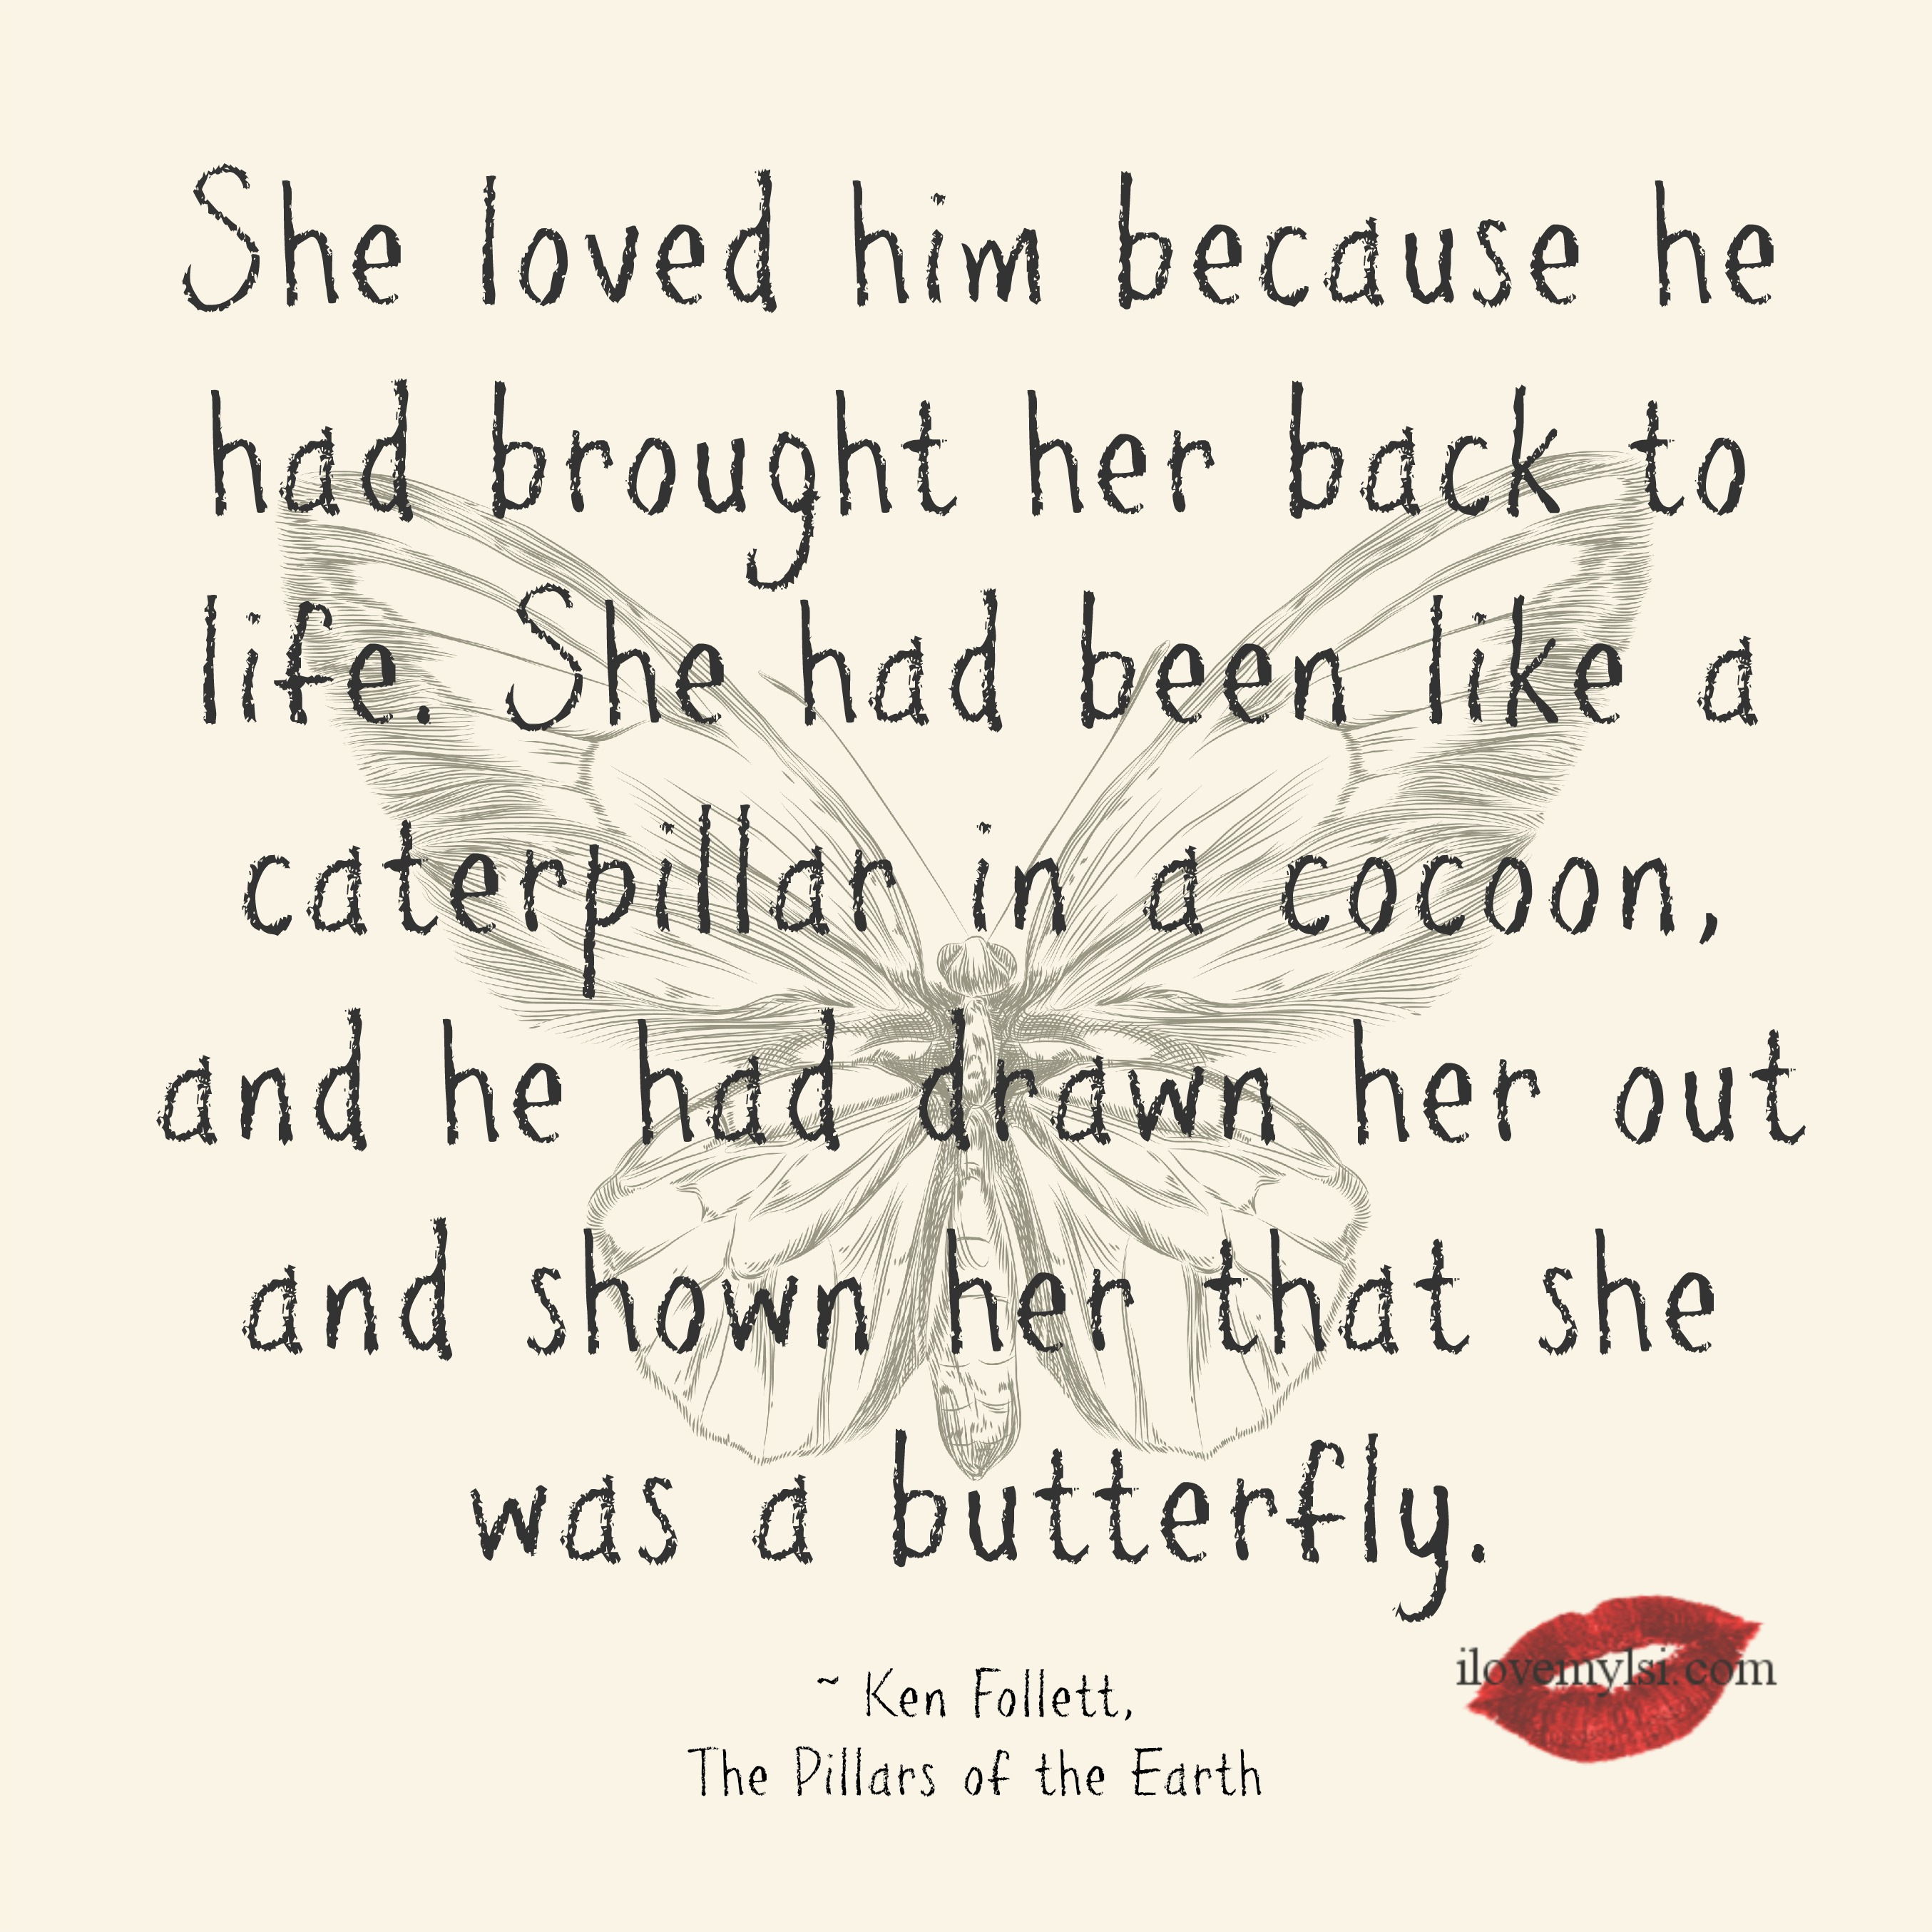 The 25 Most Romantic Love Quotes You Will Ever Read. - Page ...